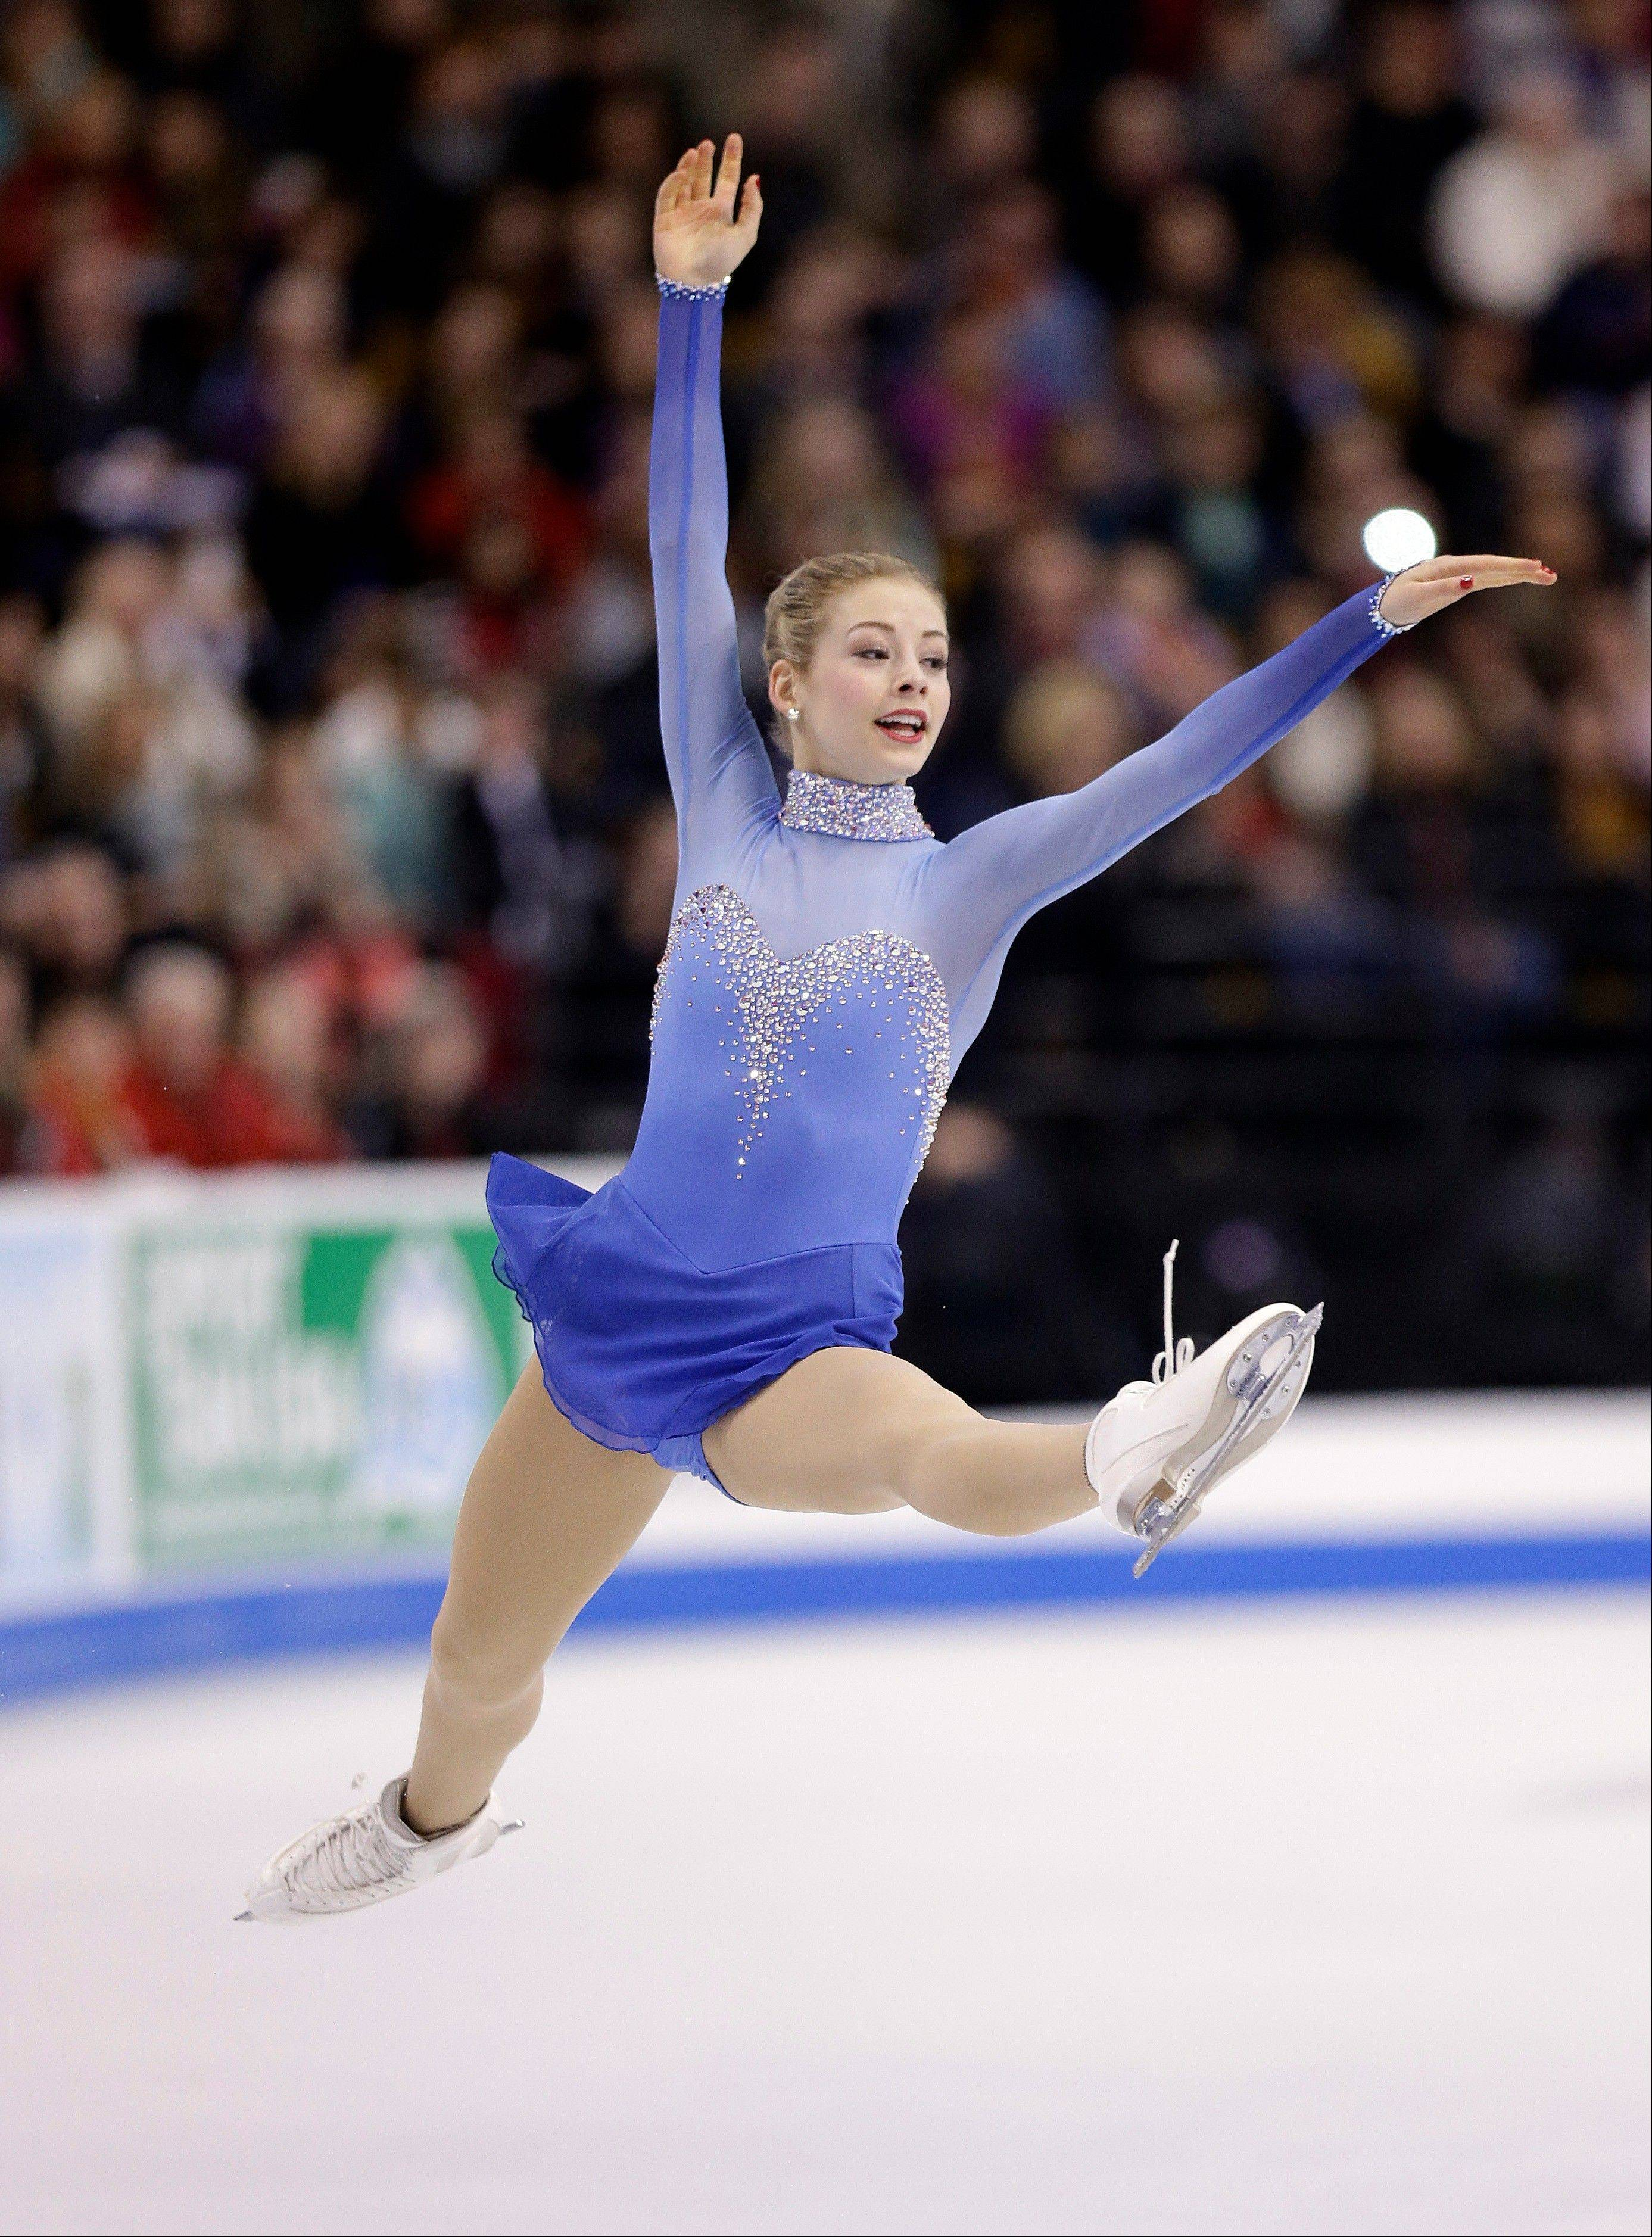 Gracie Gold showcases her leaping abilty in the women's free skate at the U.S. Figure Skating Championships Saturday in Boston. The 18-year-old from Springfield finished first overall.